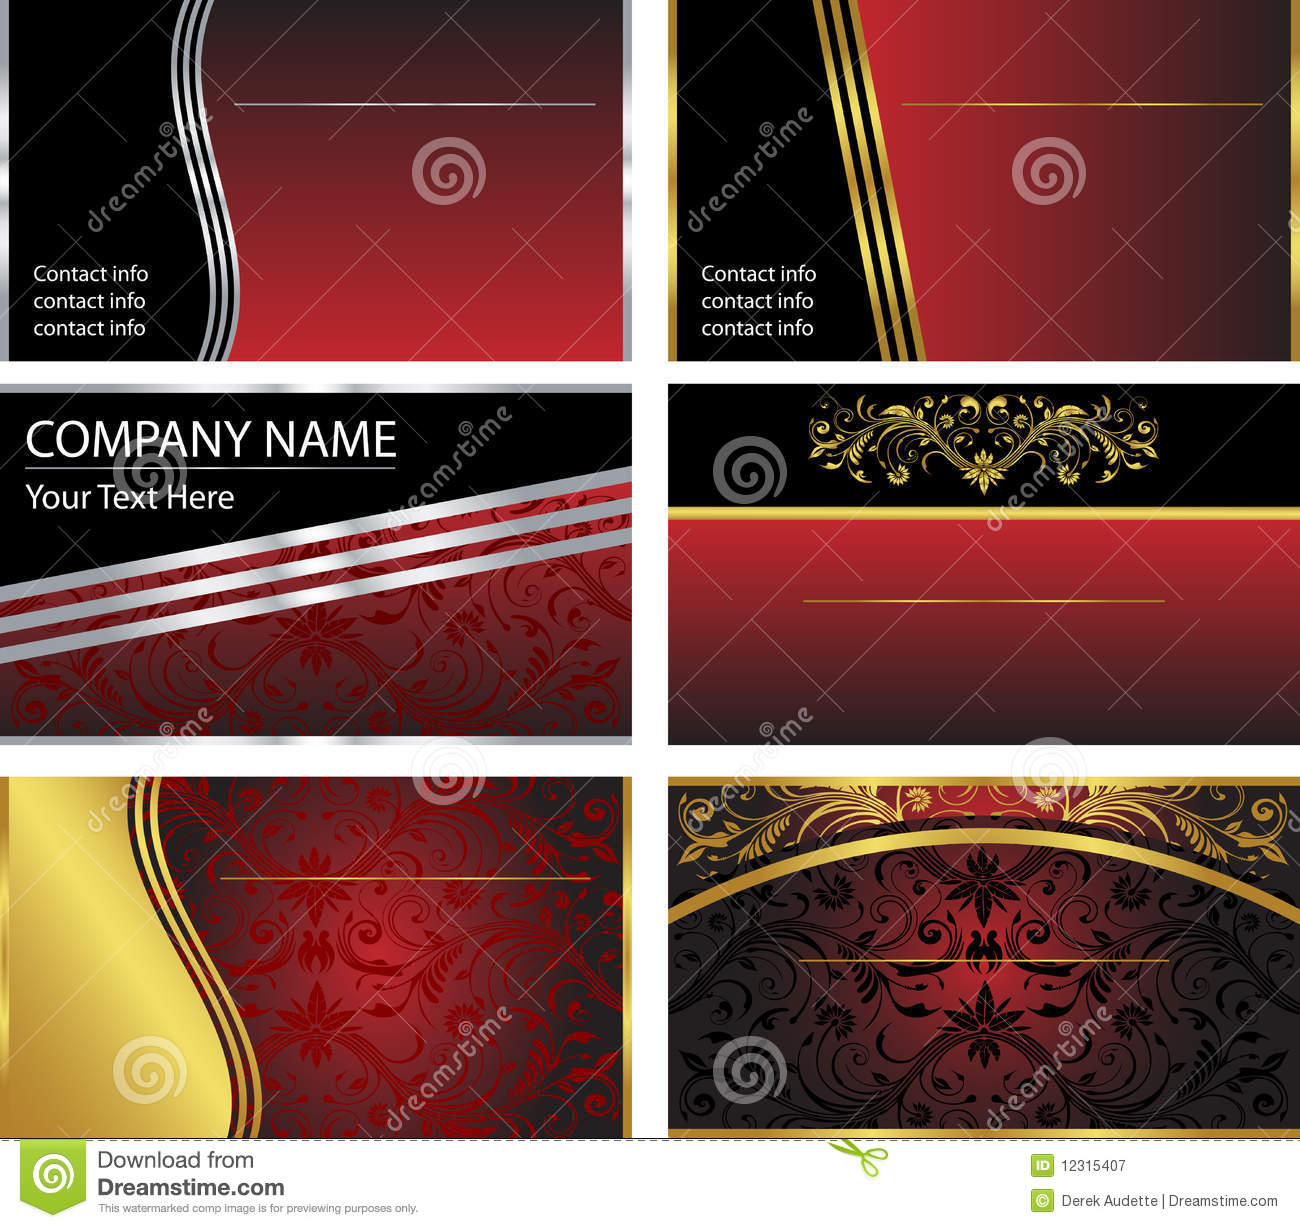 Six vector business card templates stock vector illustration of six vector business card templates reheart Choice Image